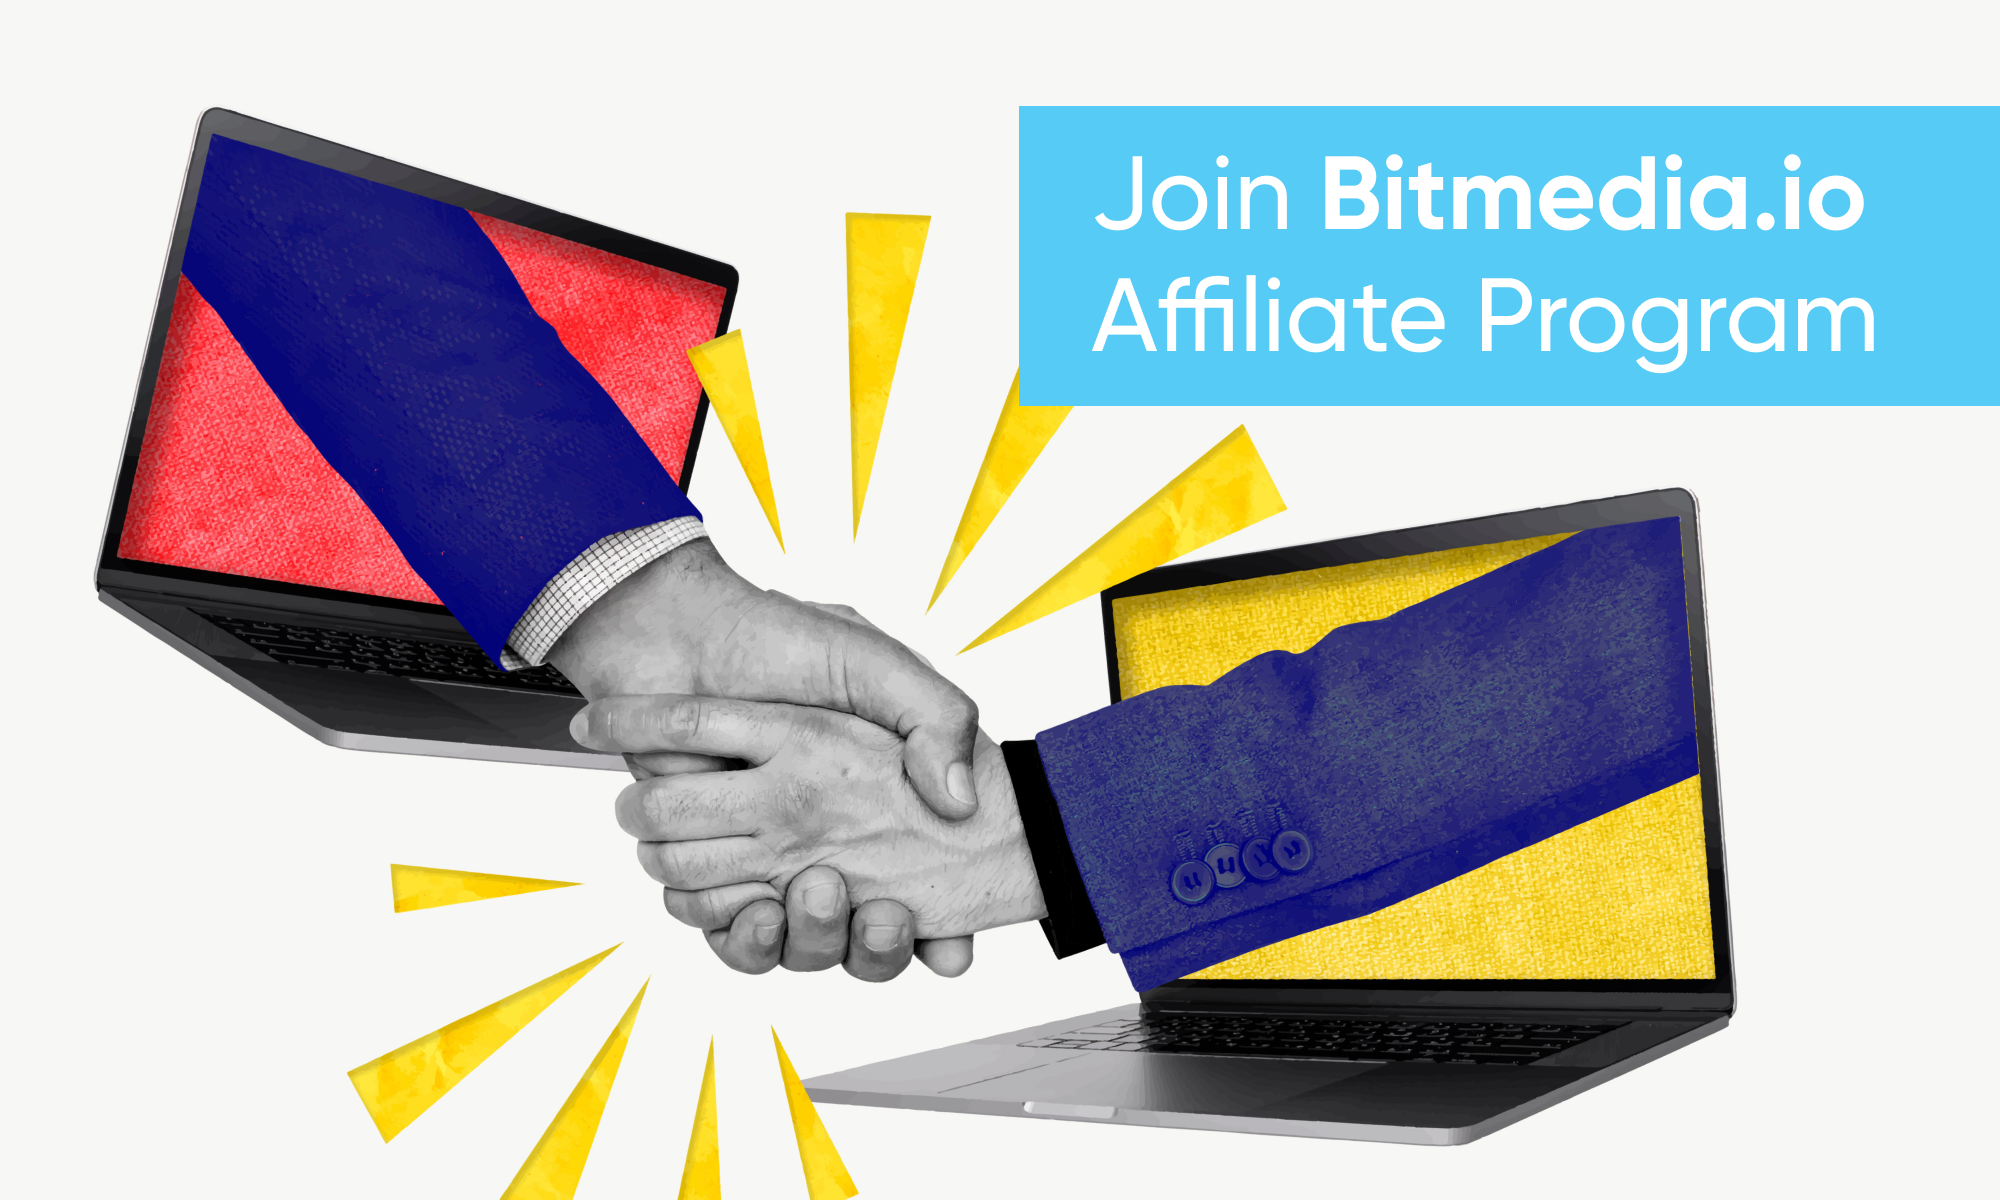 Bitmedia Affiliate Program for Advertisers and Publishers – Join to Earn